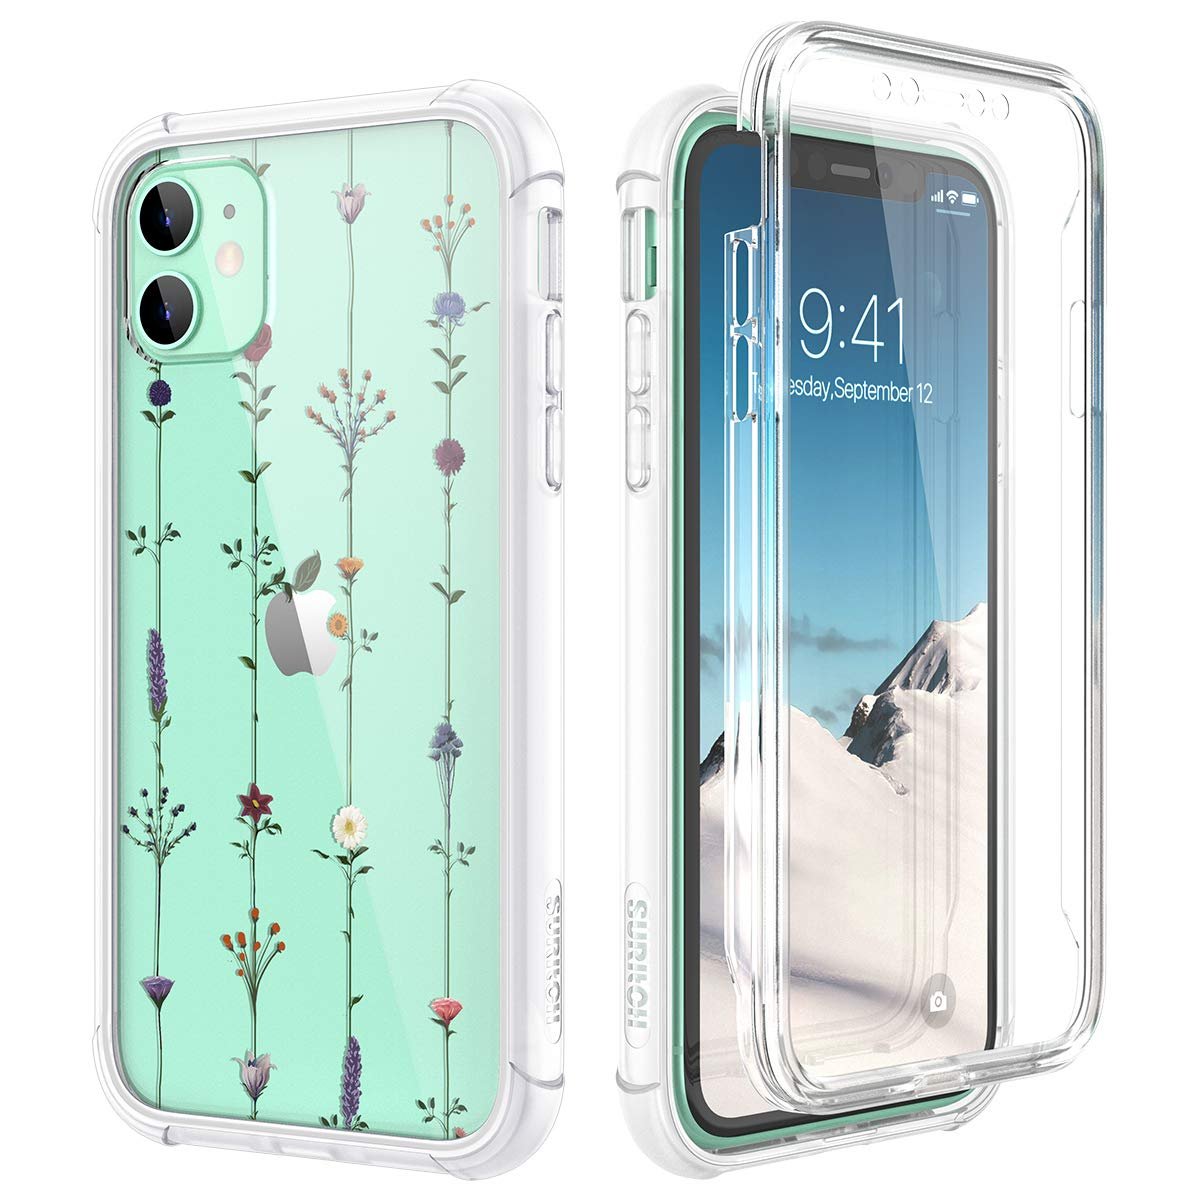 """SURITCH Clear Case for iPhone 11, [Built-in Screen Protector] Shockproof Full Body Protection Rugged Bumper Rubber Transparent with Floral Pattern Protective Case for iPhone 11 6.1""""(Tree Vine Flower)"""